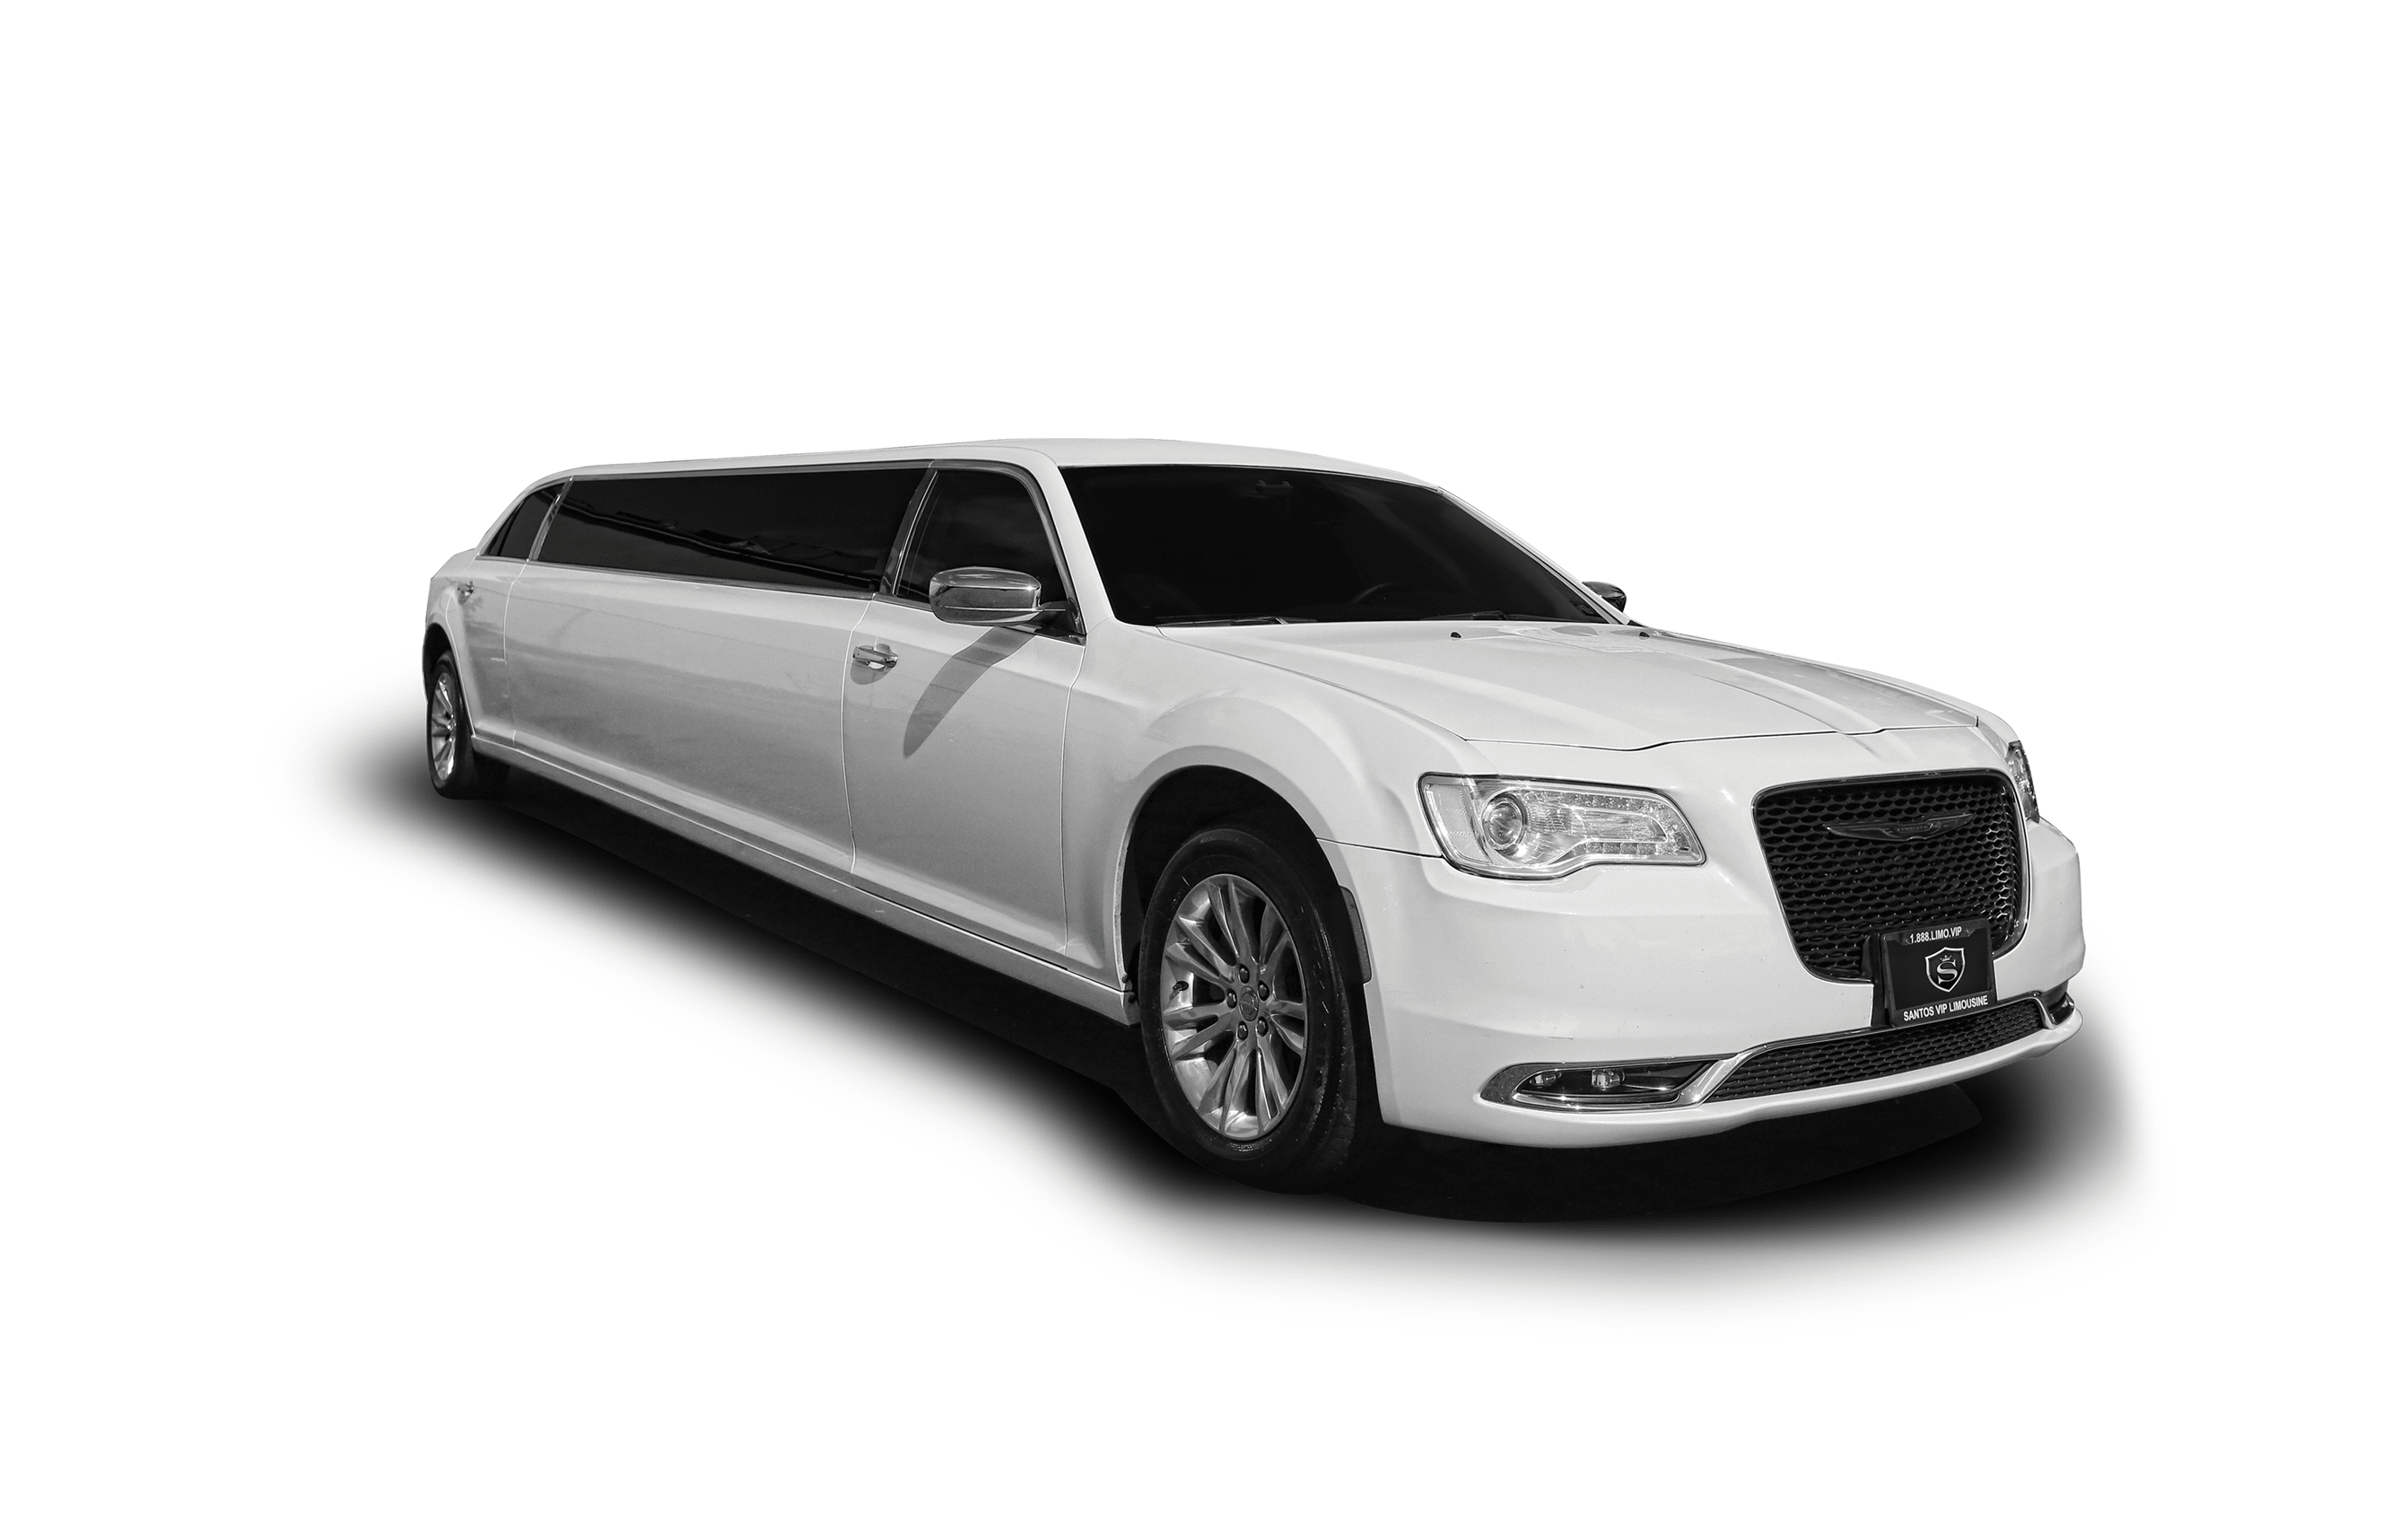 Chrysler 300 stretch limo for sporting events in NJ - NY